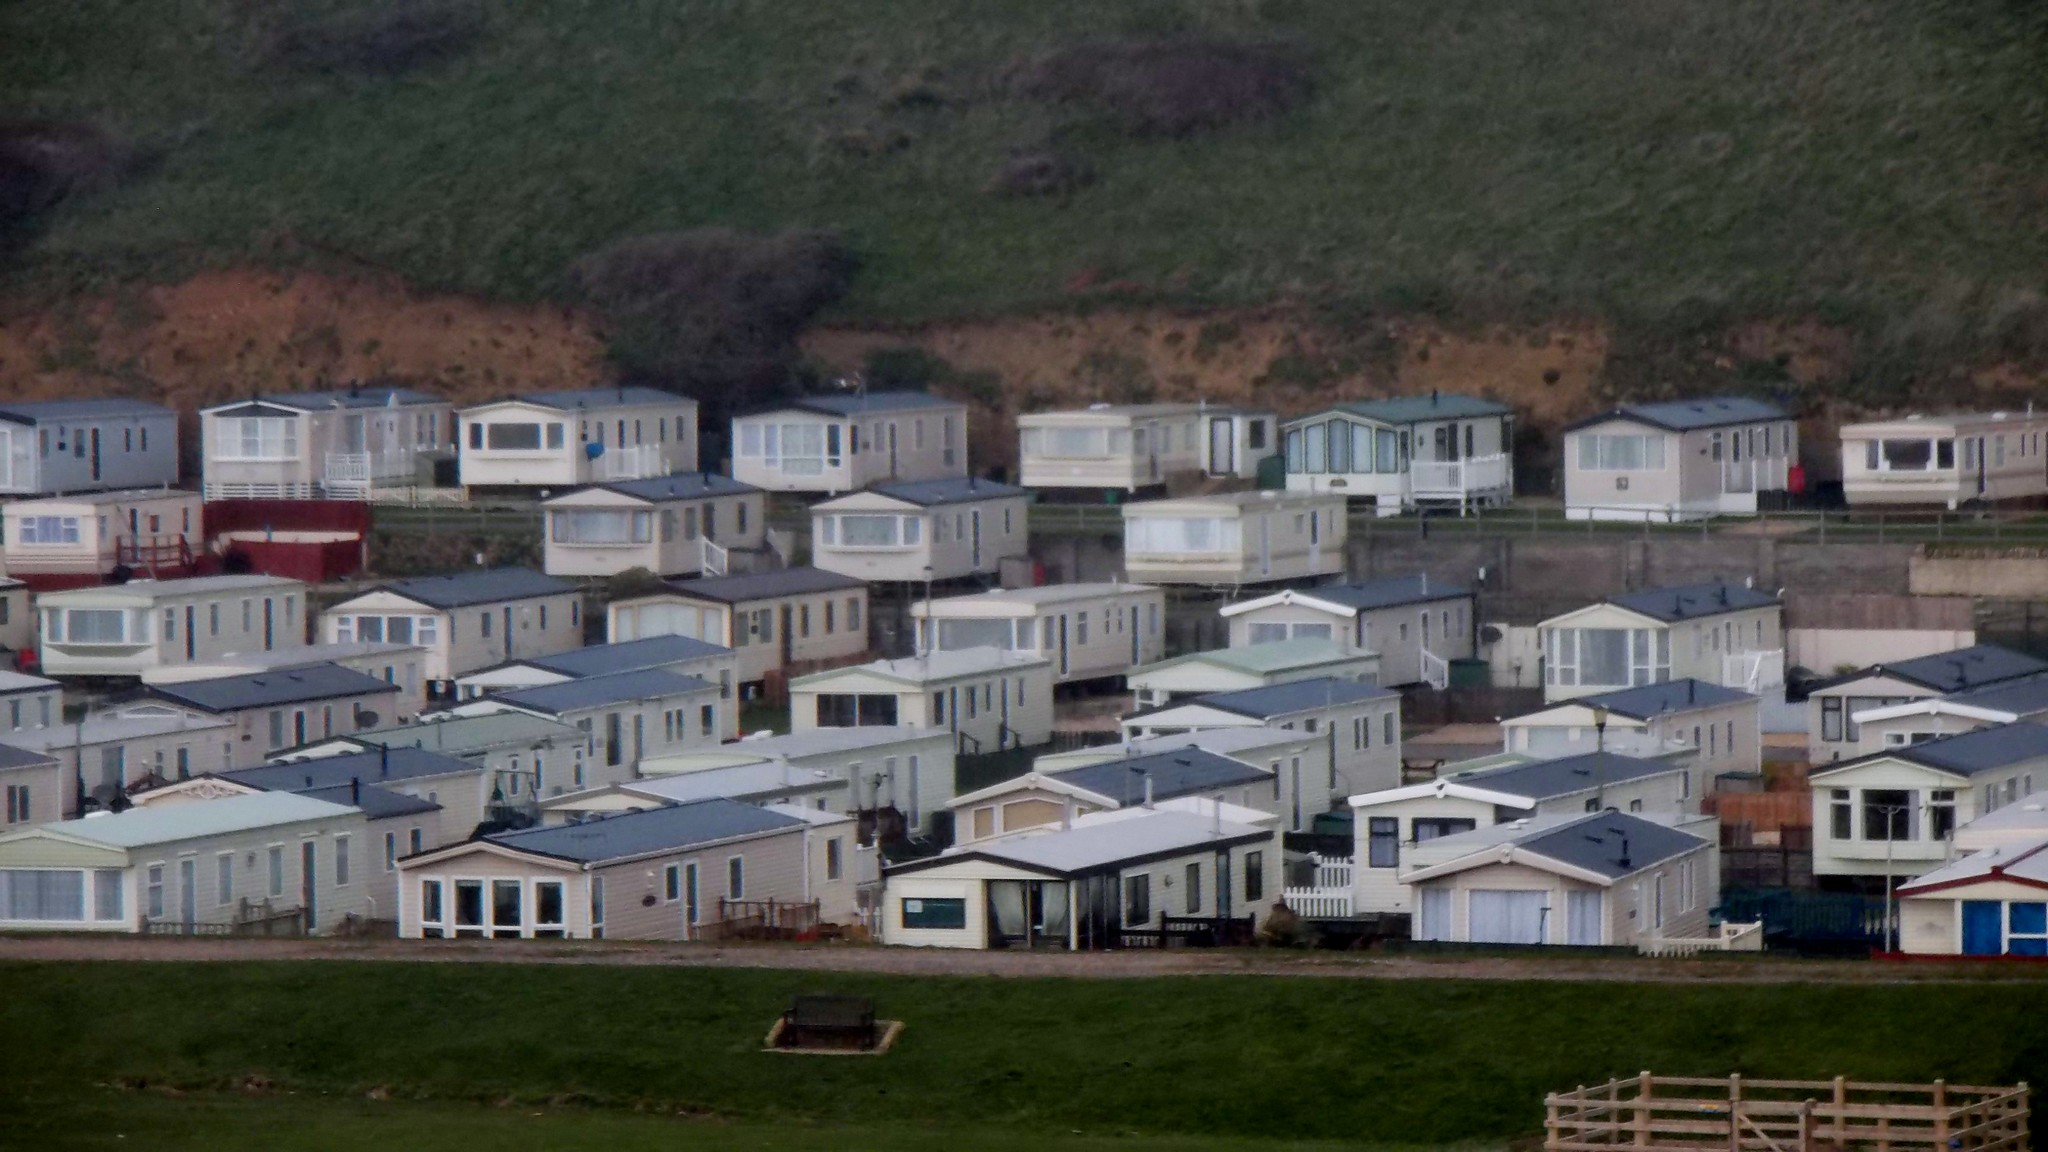 Mobile homes (oatsy40 / Flickr / CC BY 2.0)